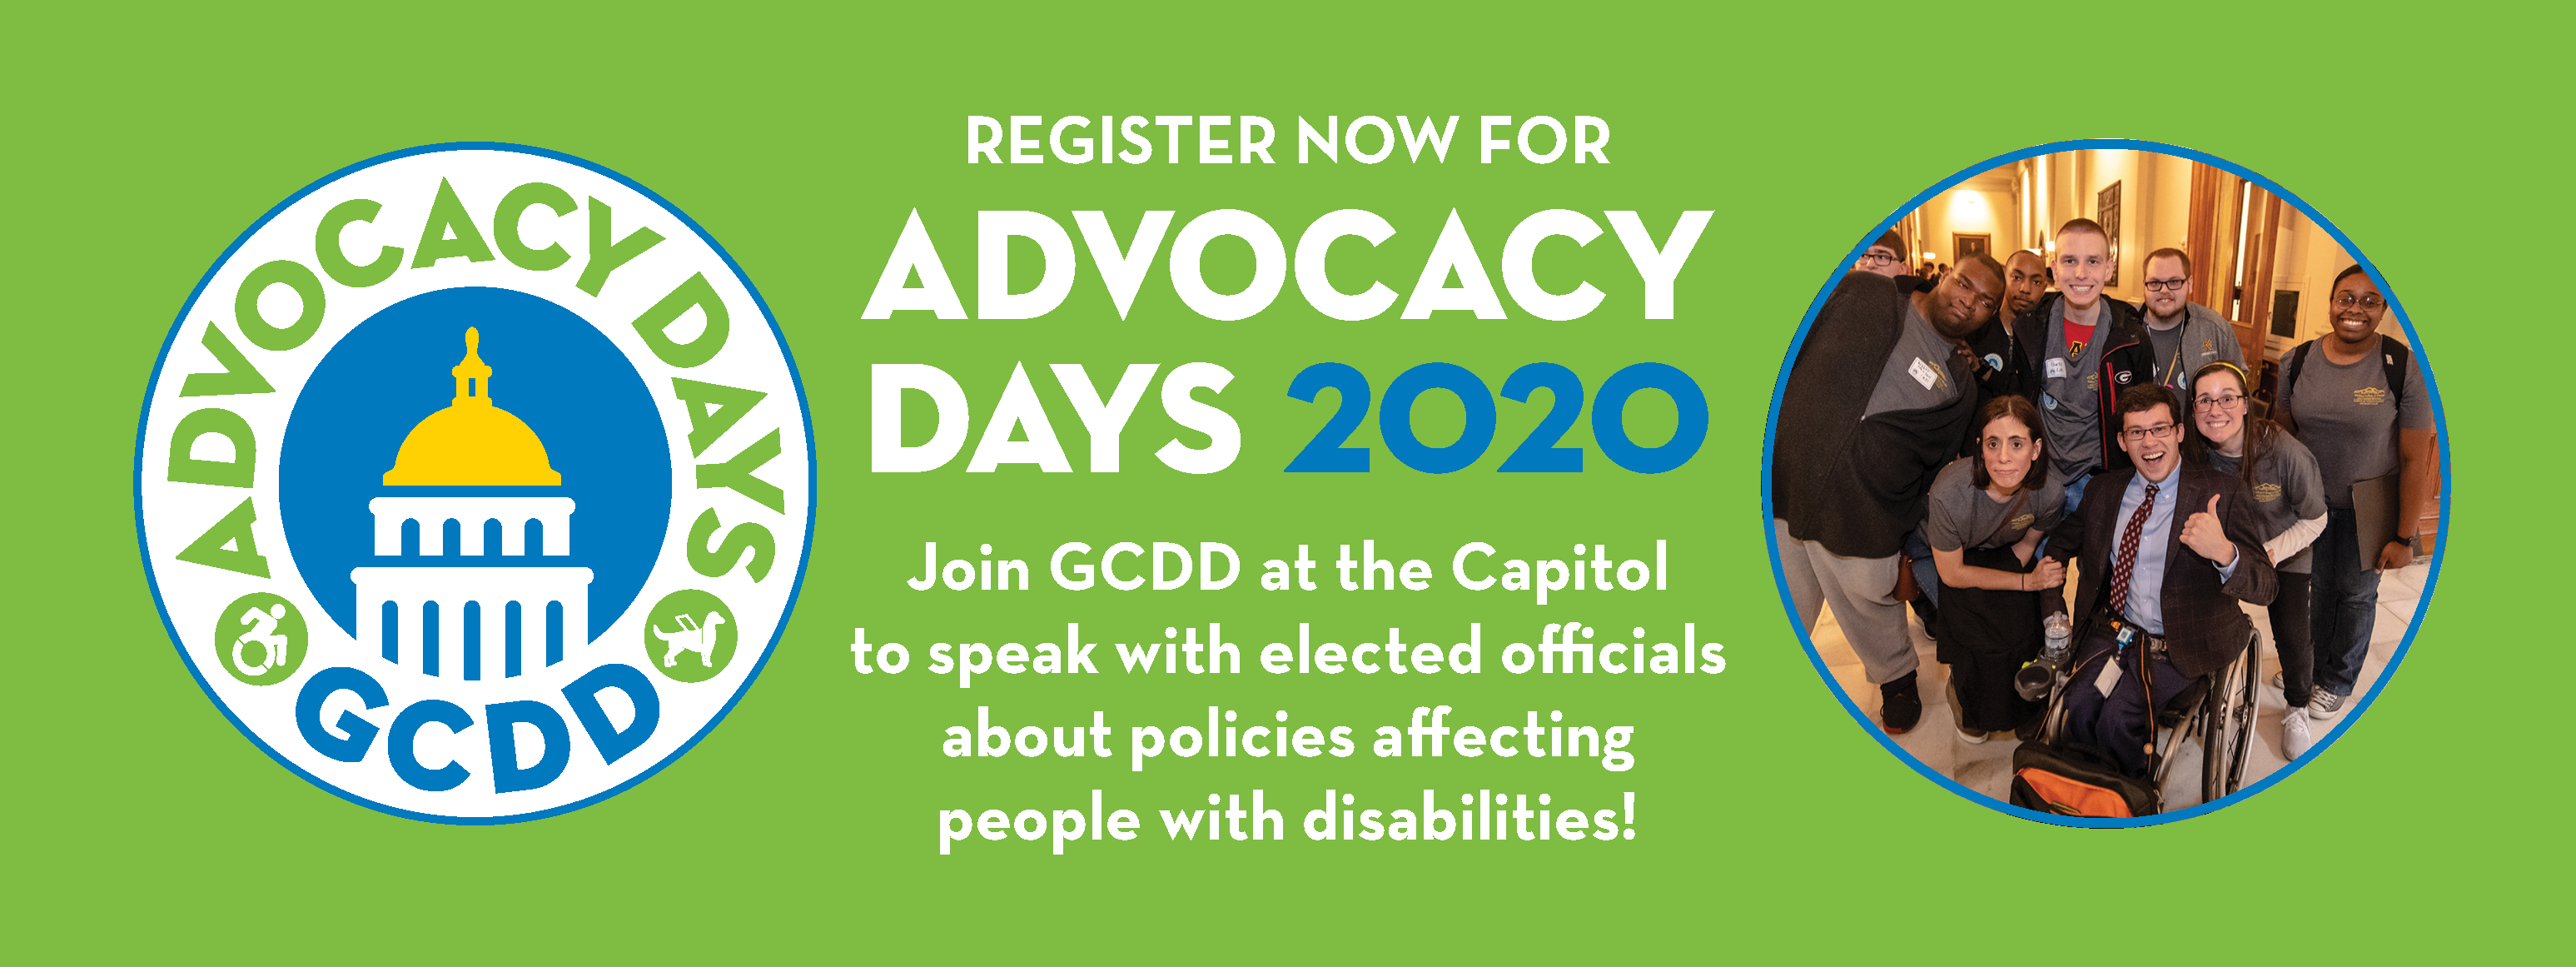 Register Now for GCDD Advocacy Days 2020!